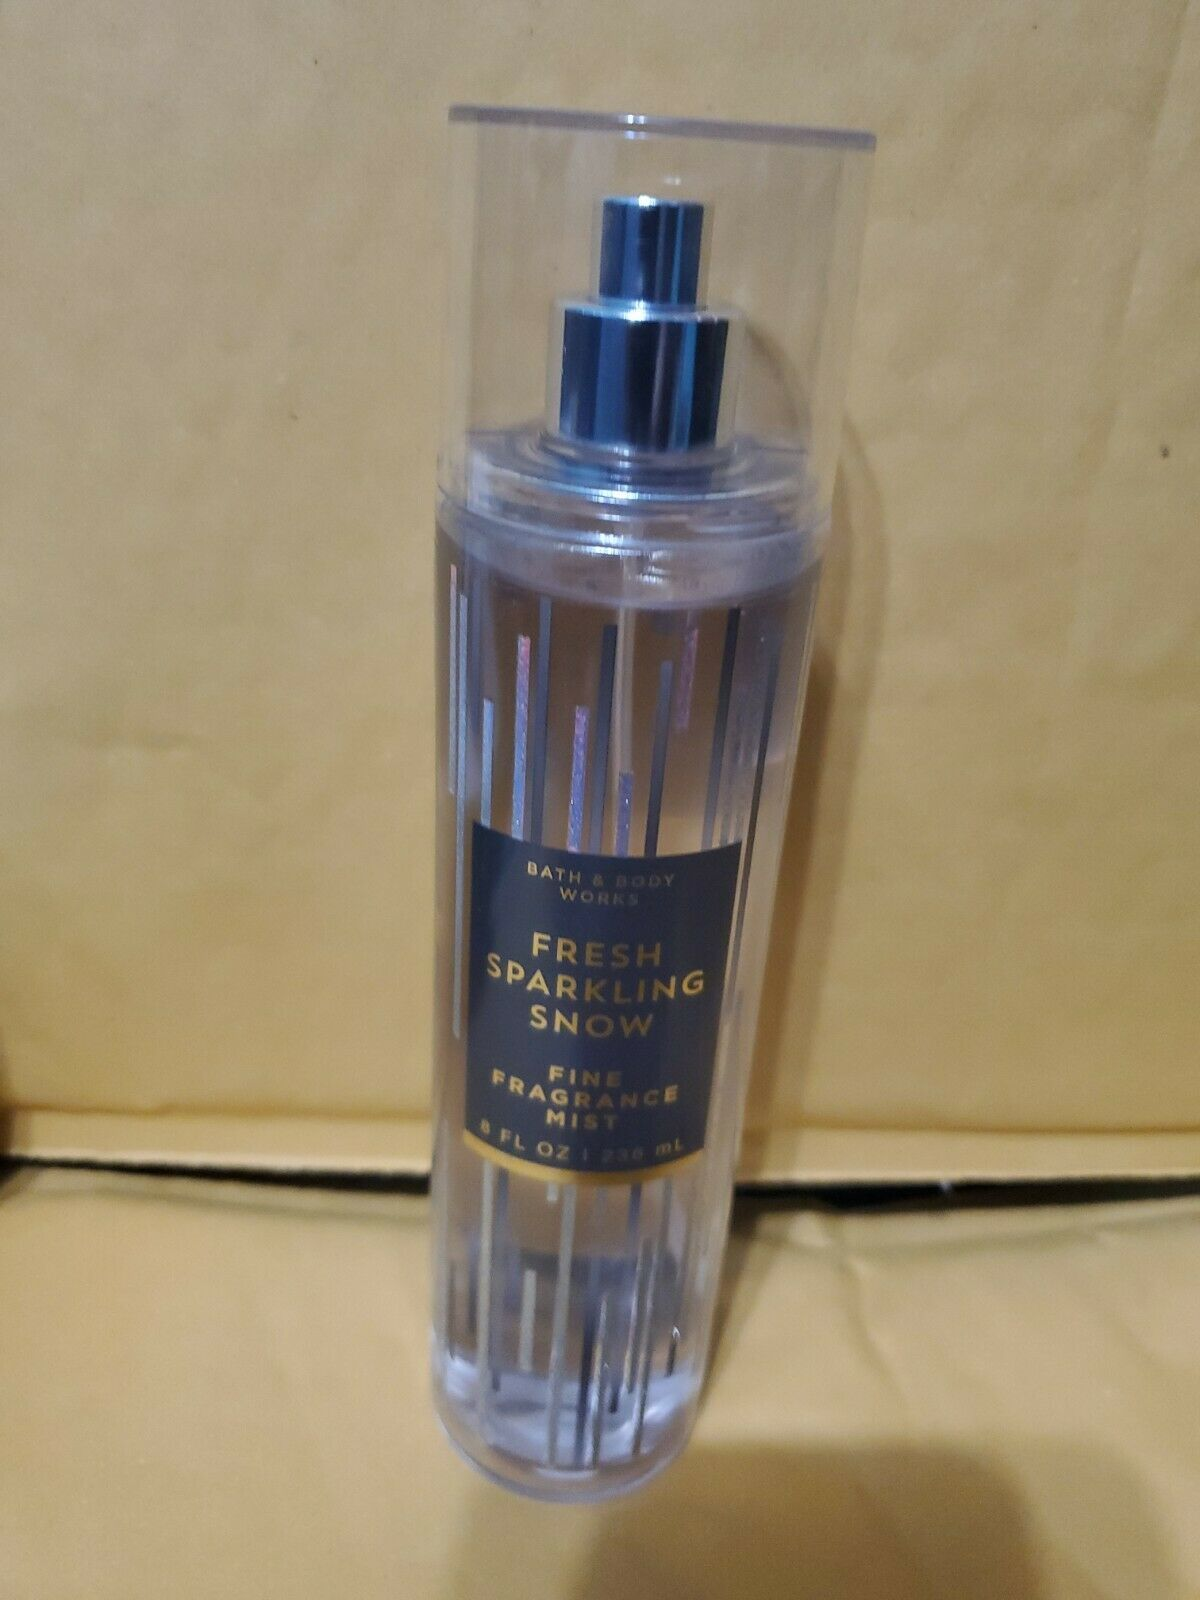 Primary image for BATH AND BODY WORKS FRAGRANCE  BODY Sprkling Snow  Mist 8 FL  oz